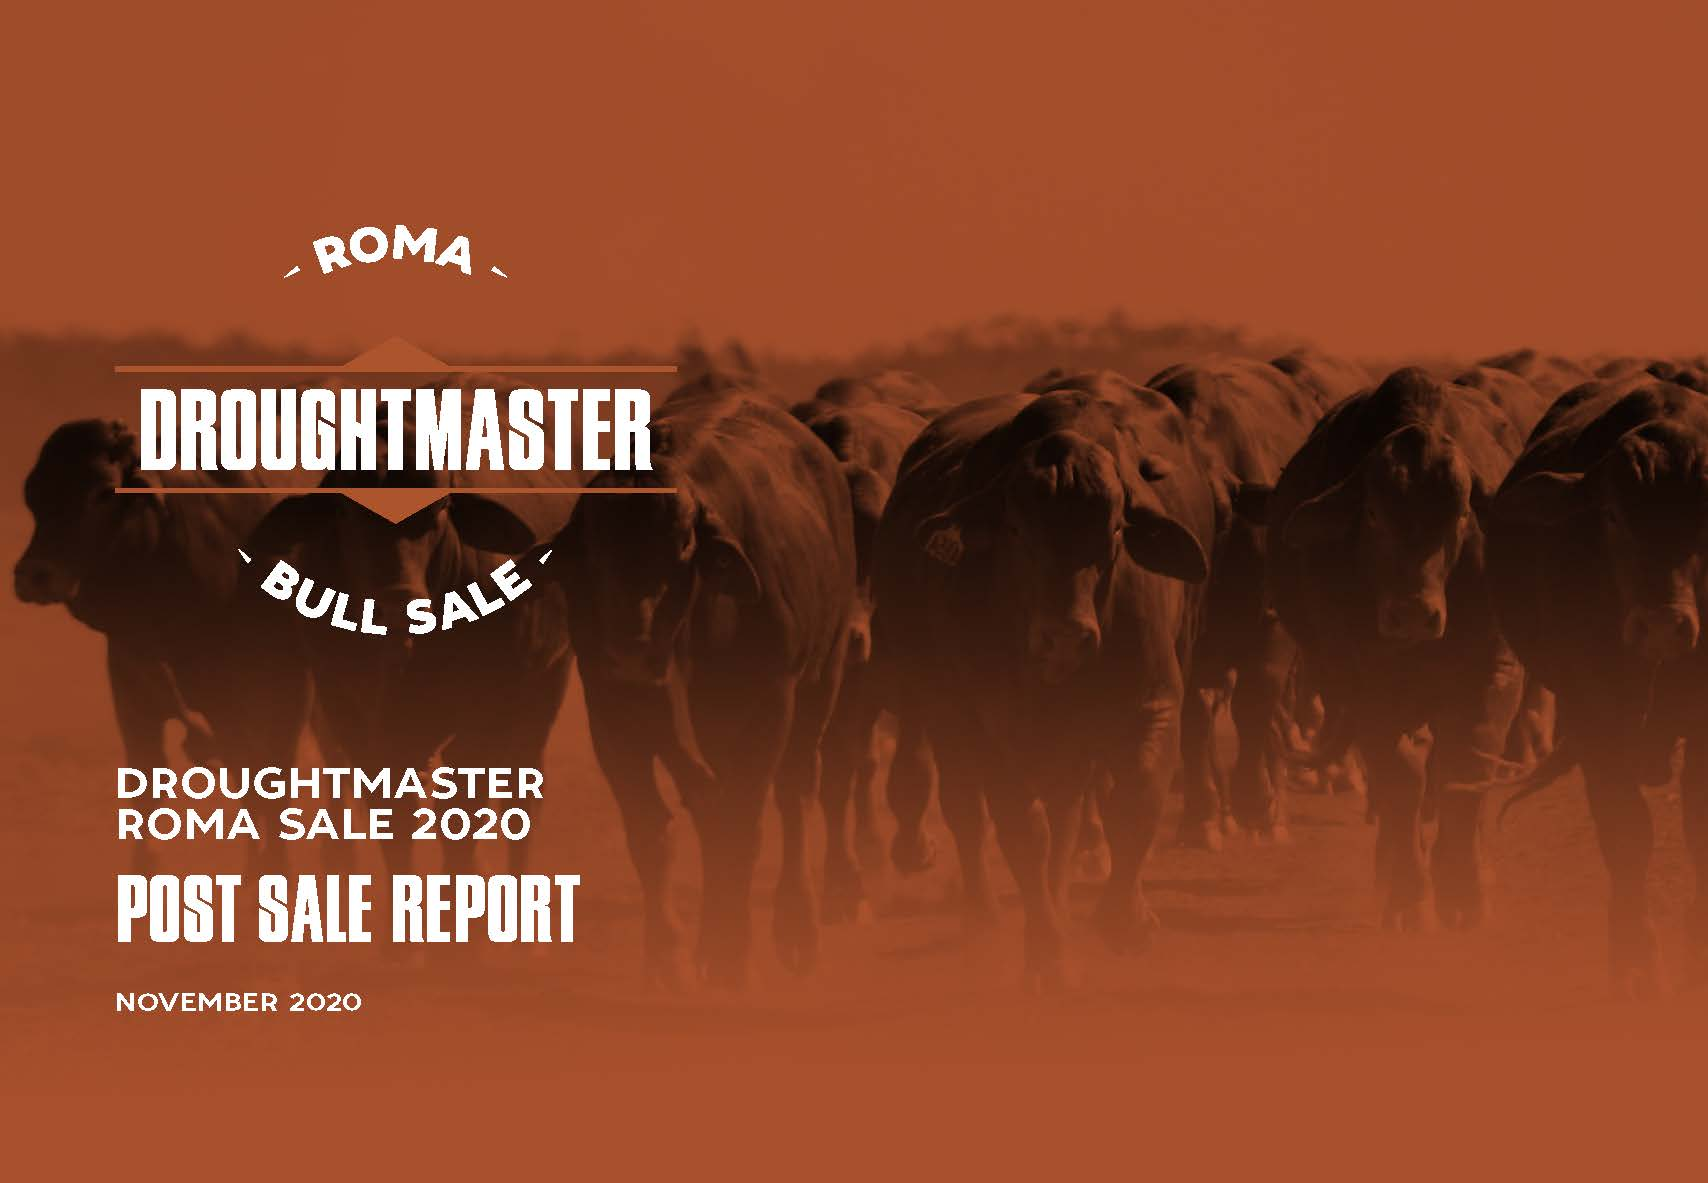 Roma Bull Sale Front cover